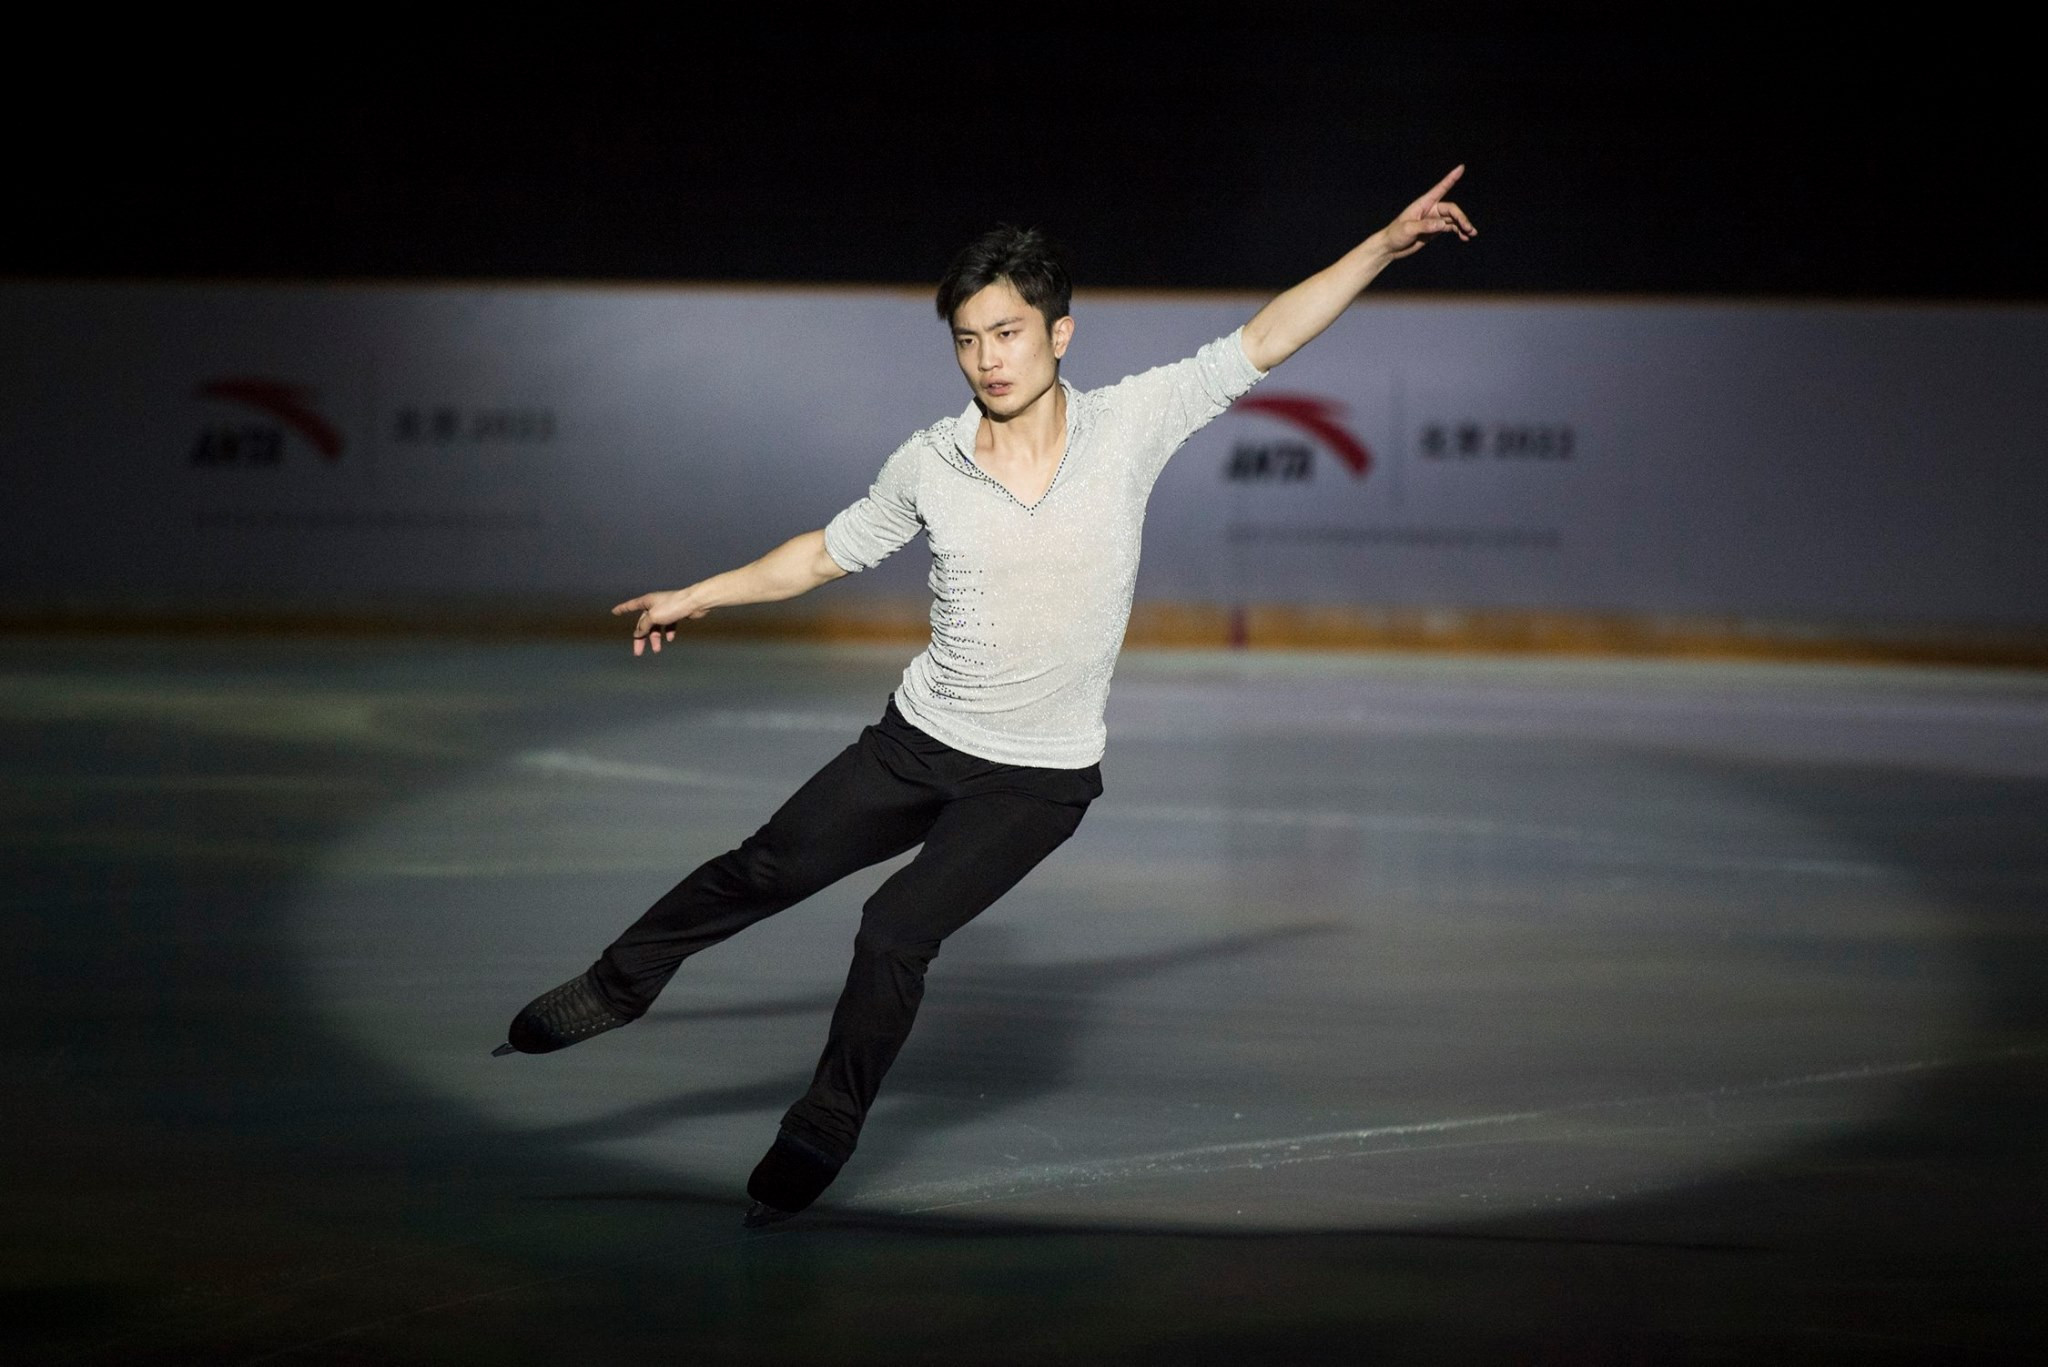 A special skating show was staged to celebrate ANTA's new sponsorship deal with Beijing 2022 ©Beijing 2022